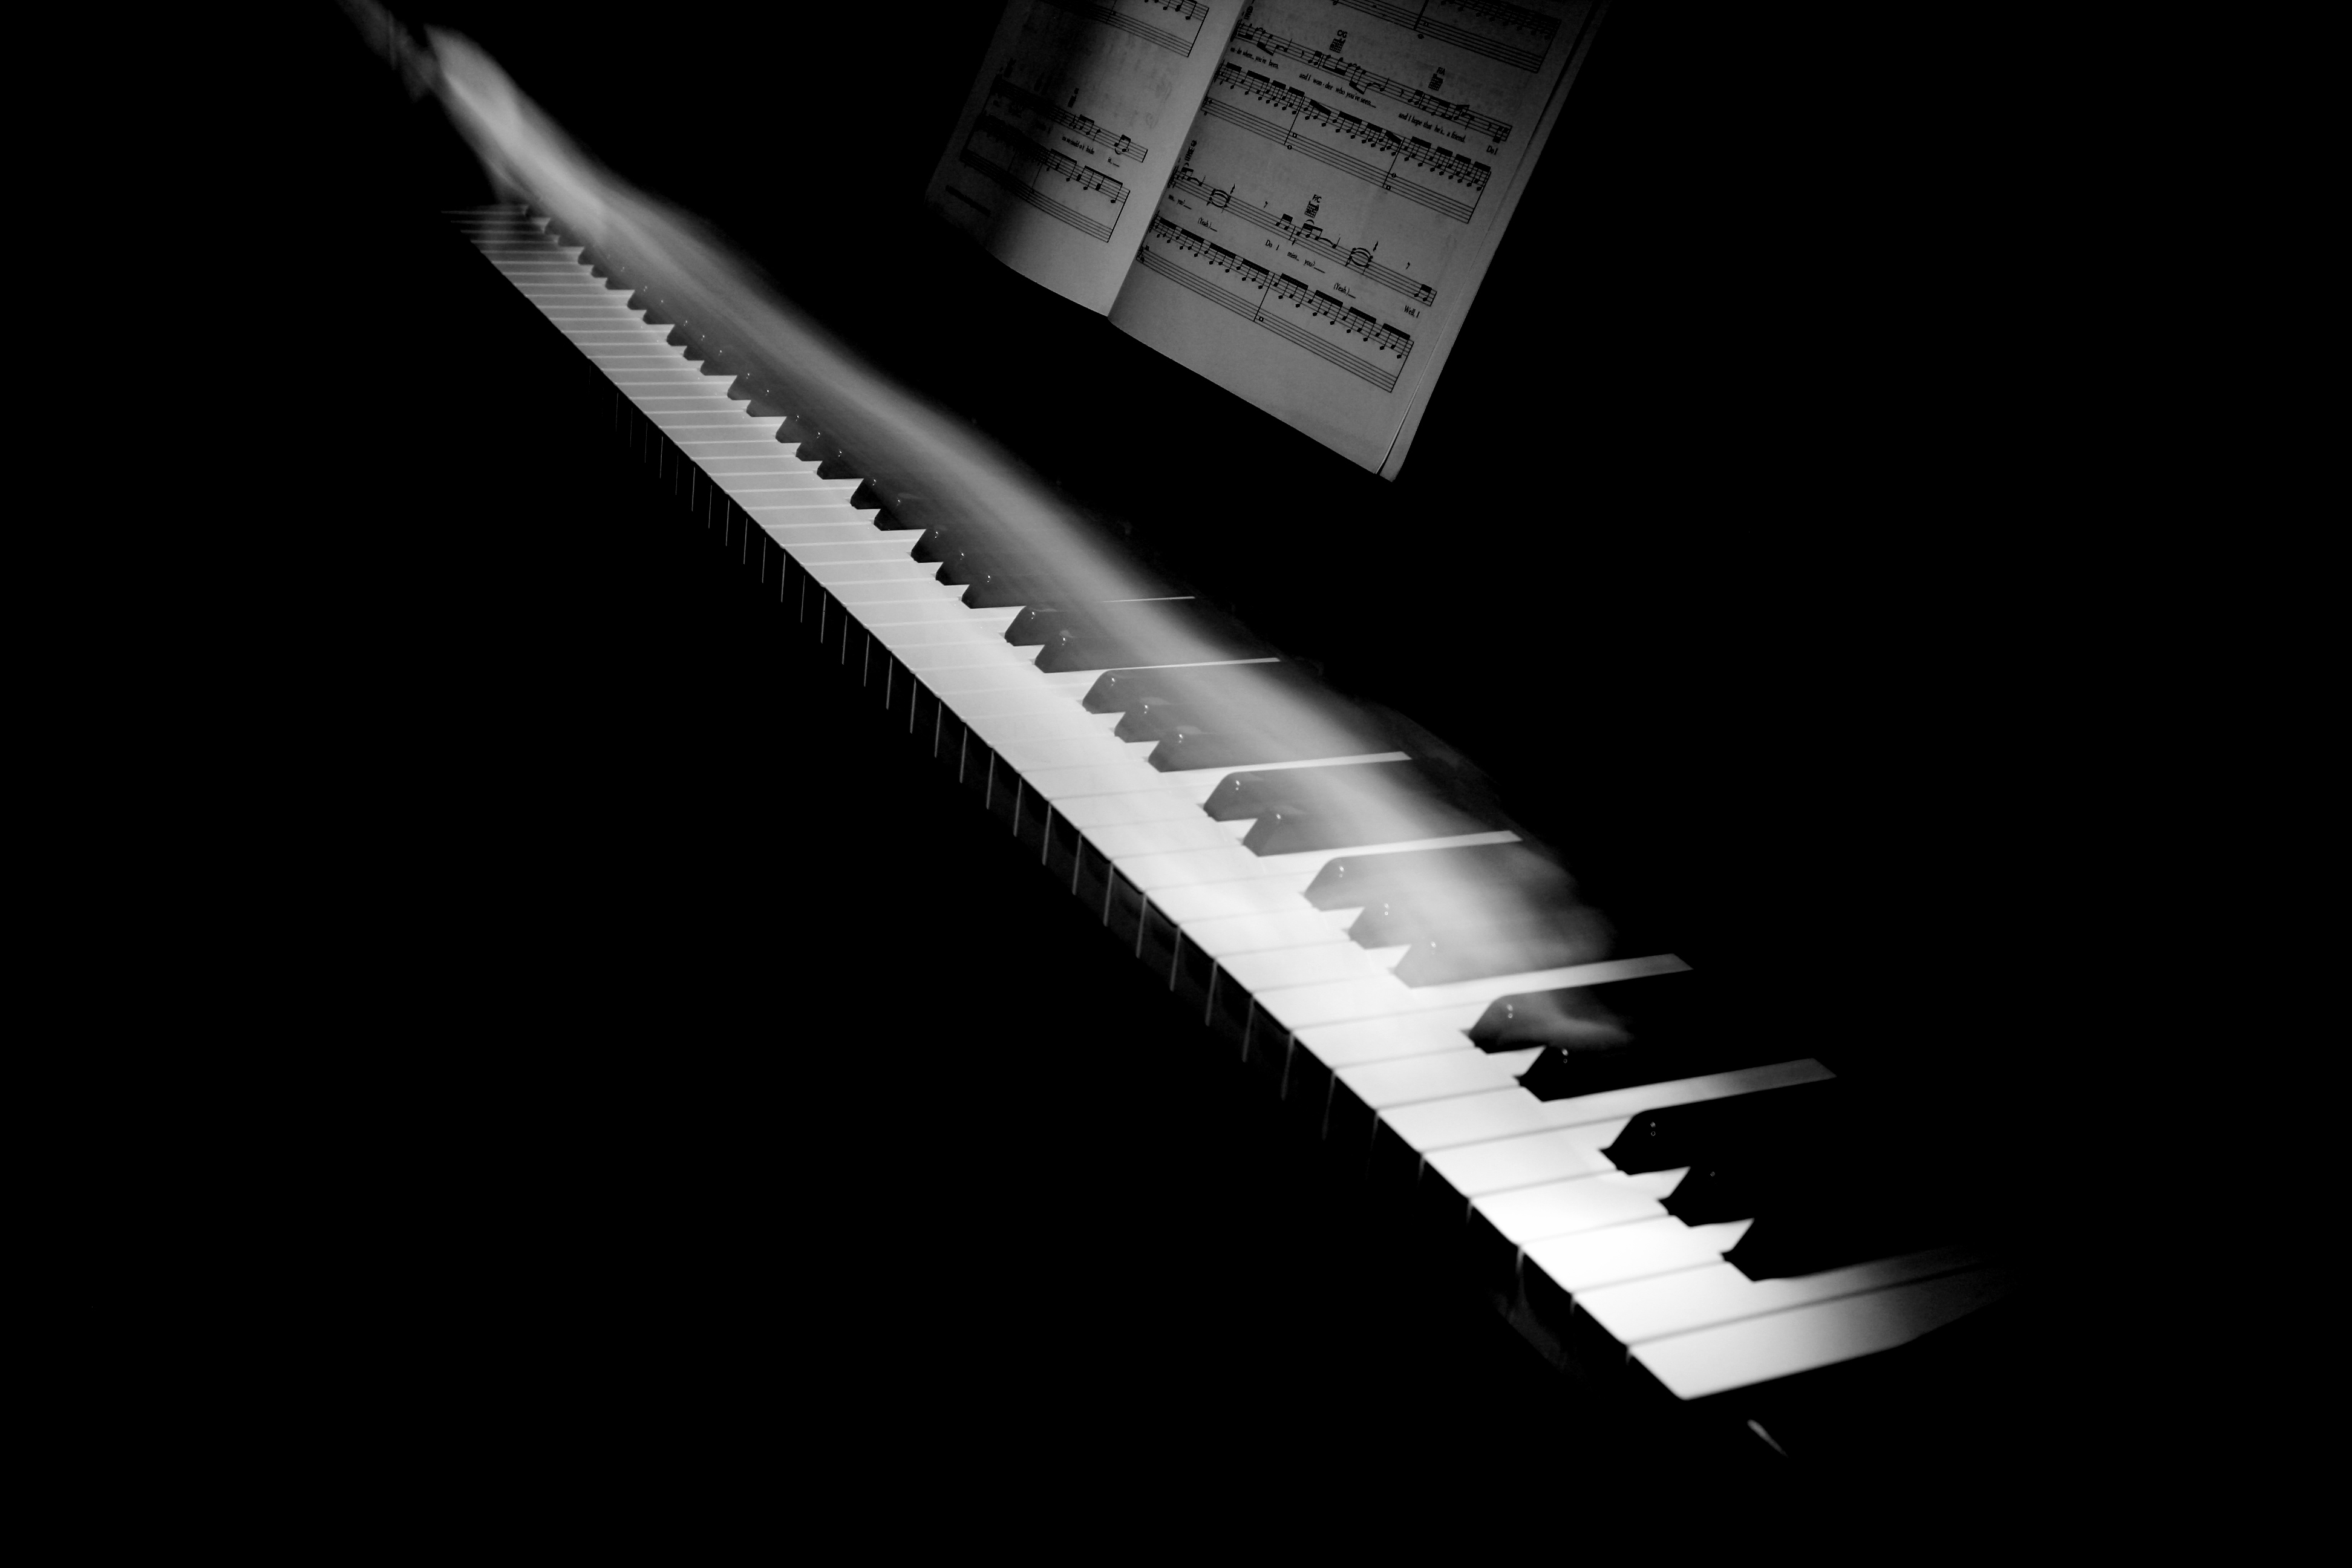 Piano for composing stress relief music